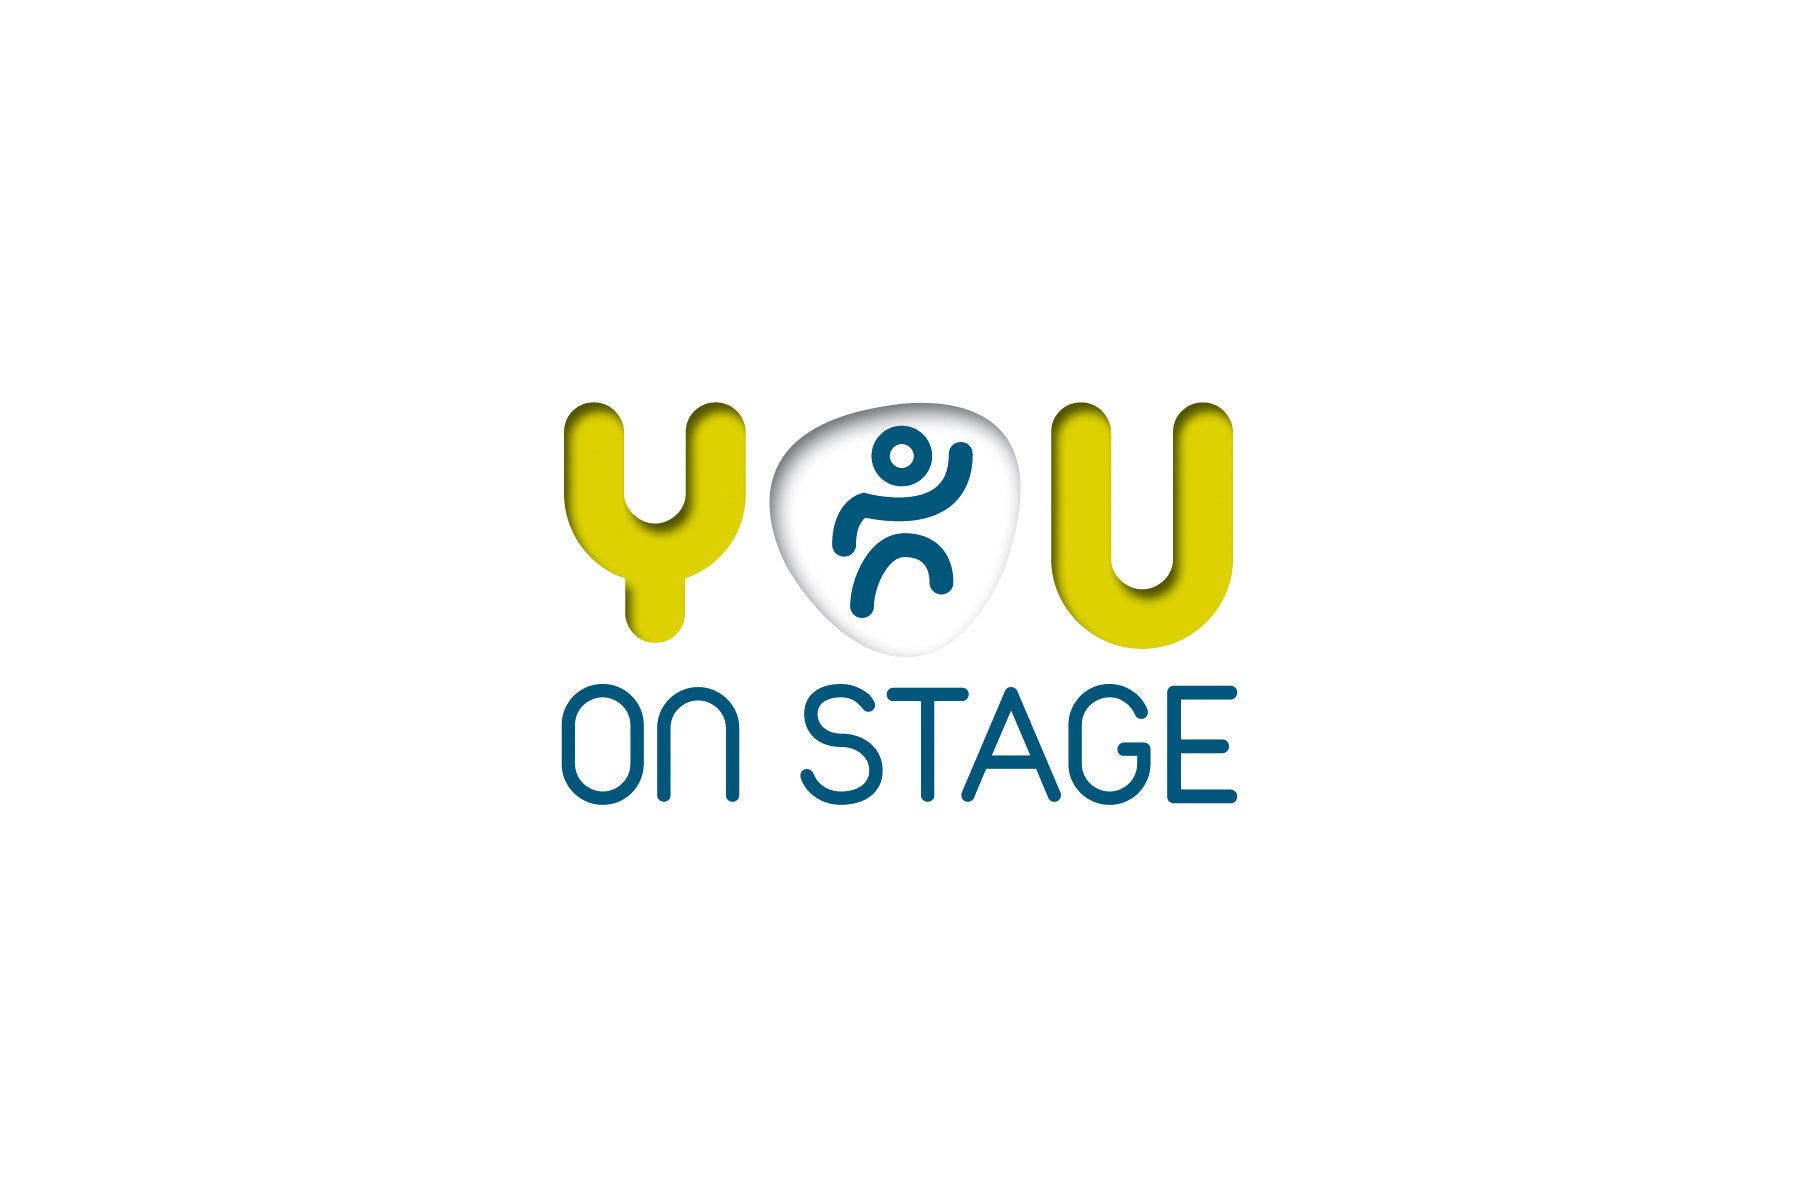 You on stage